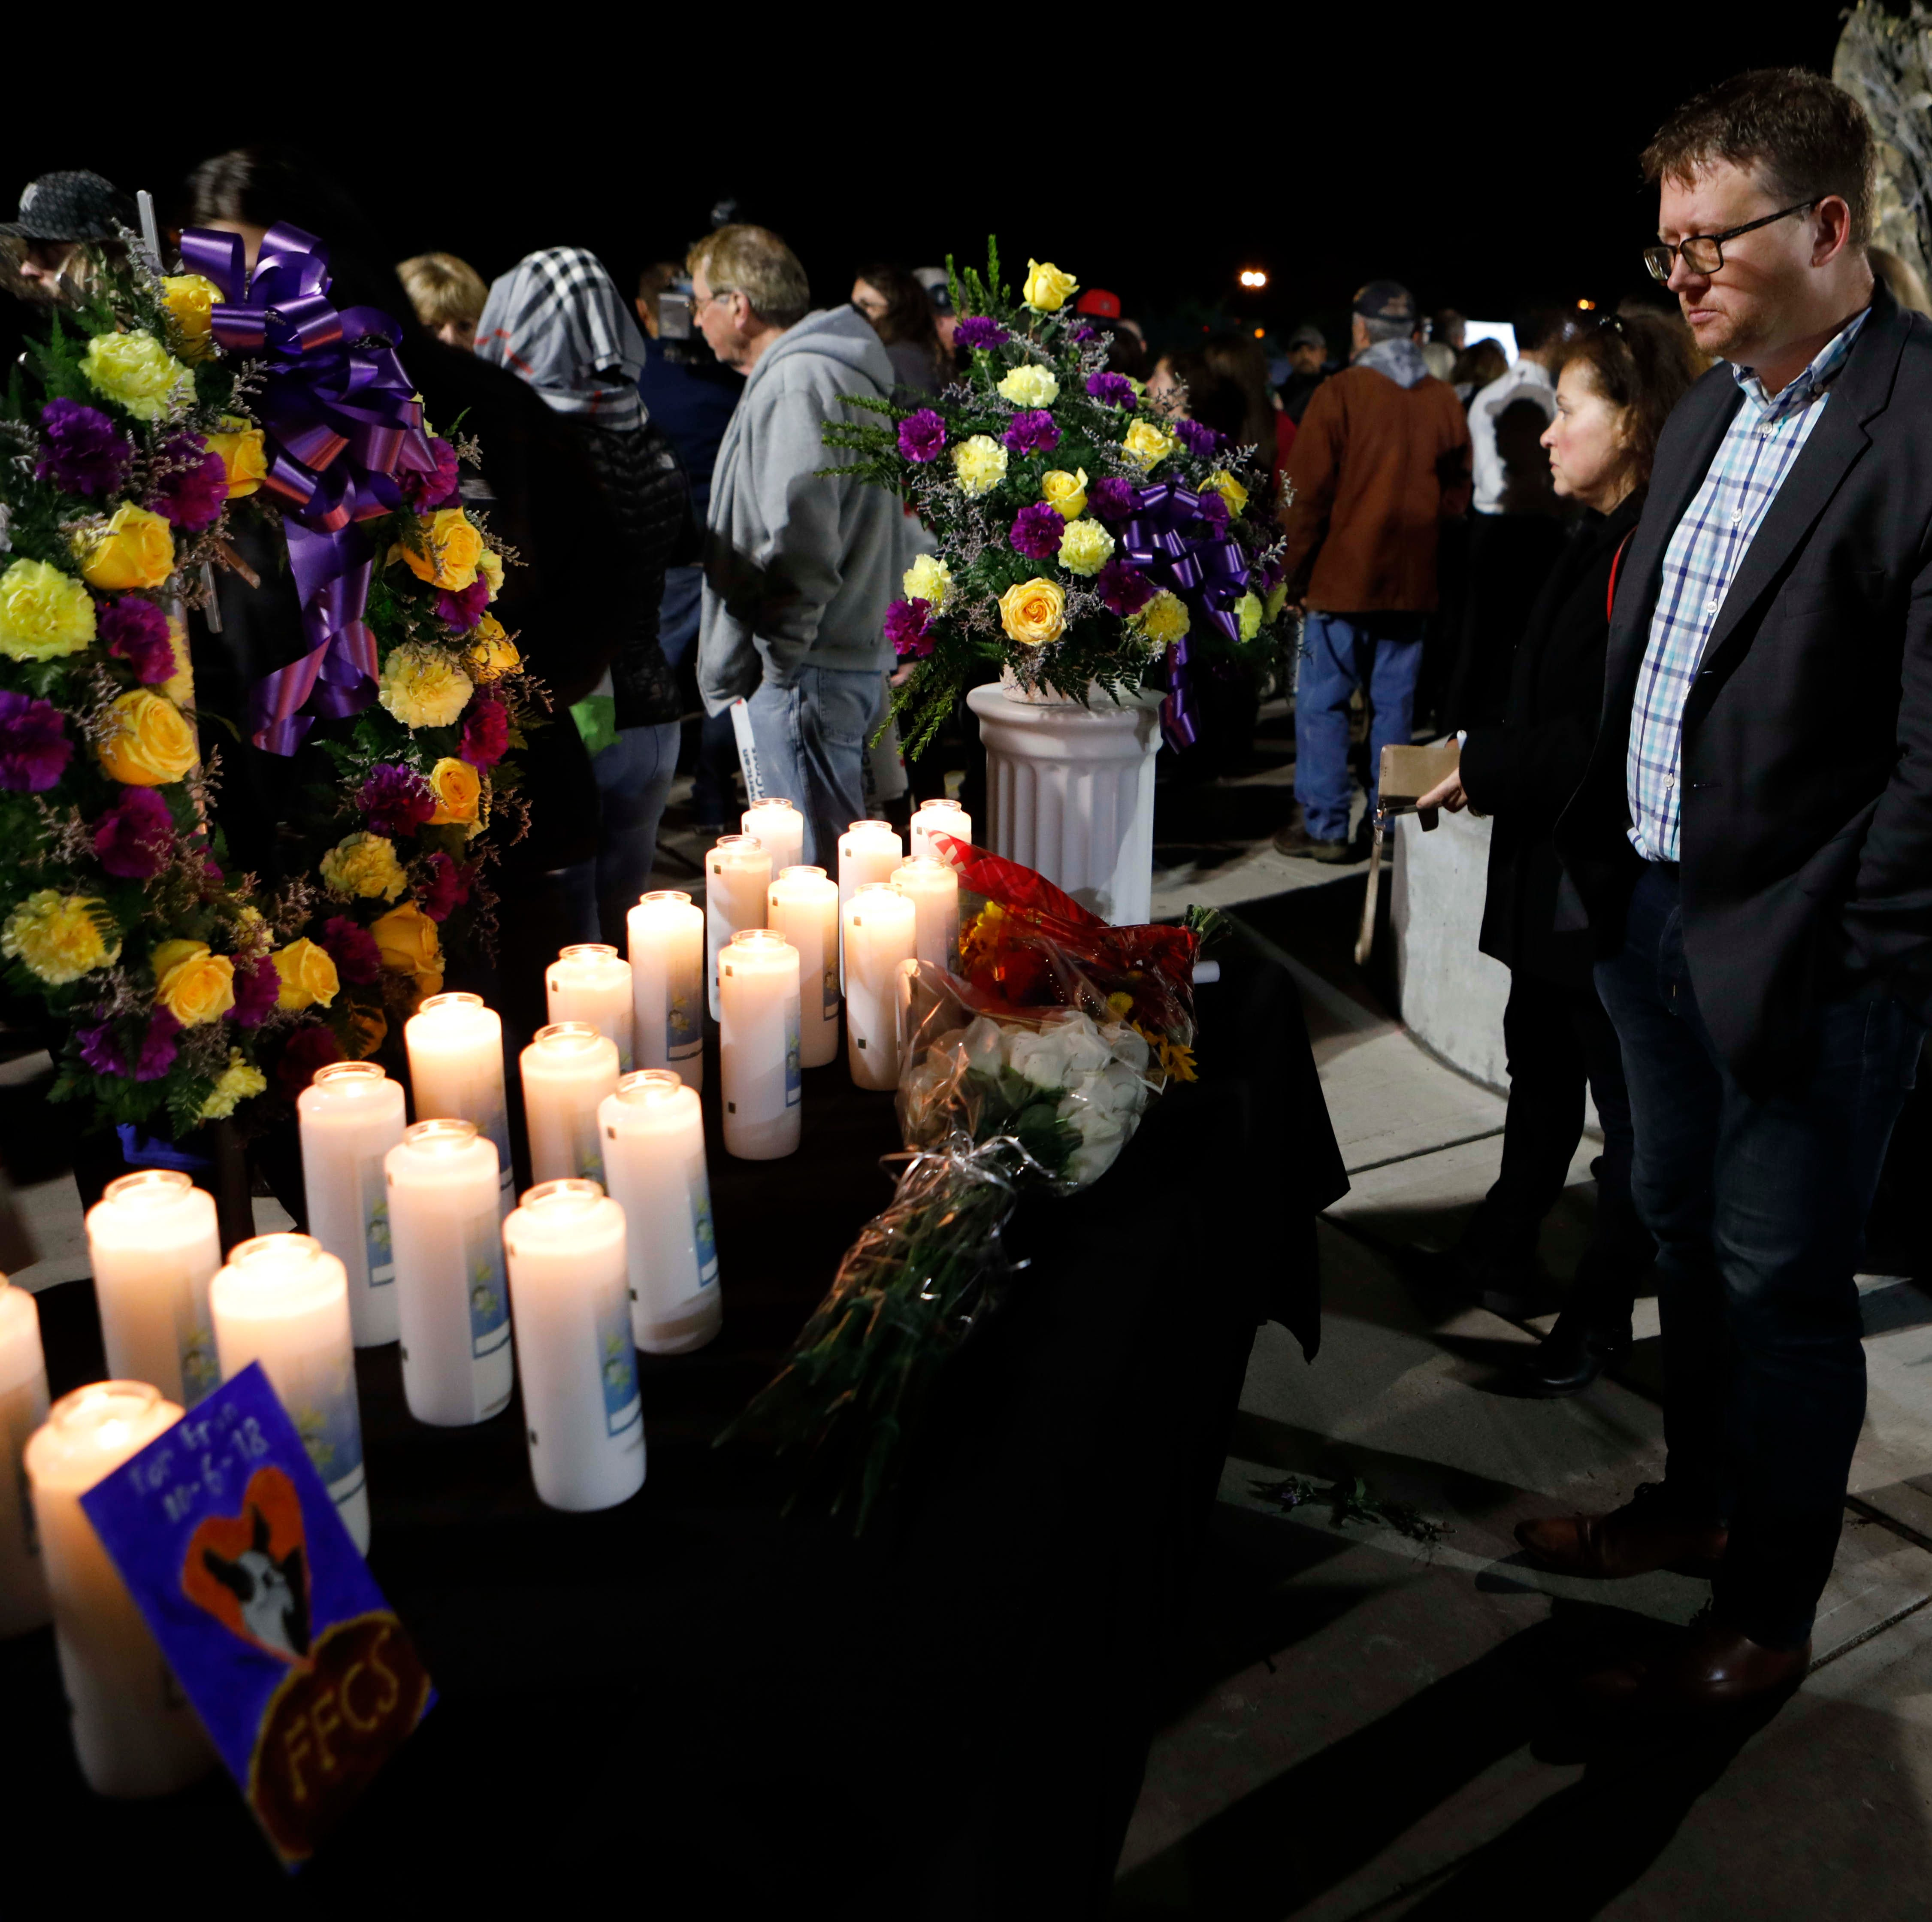 Limo company, state point fingers over deadly crash